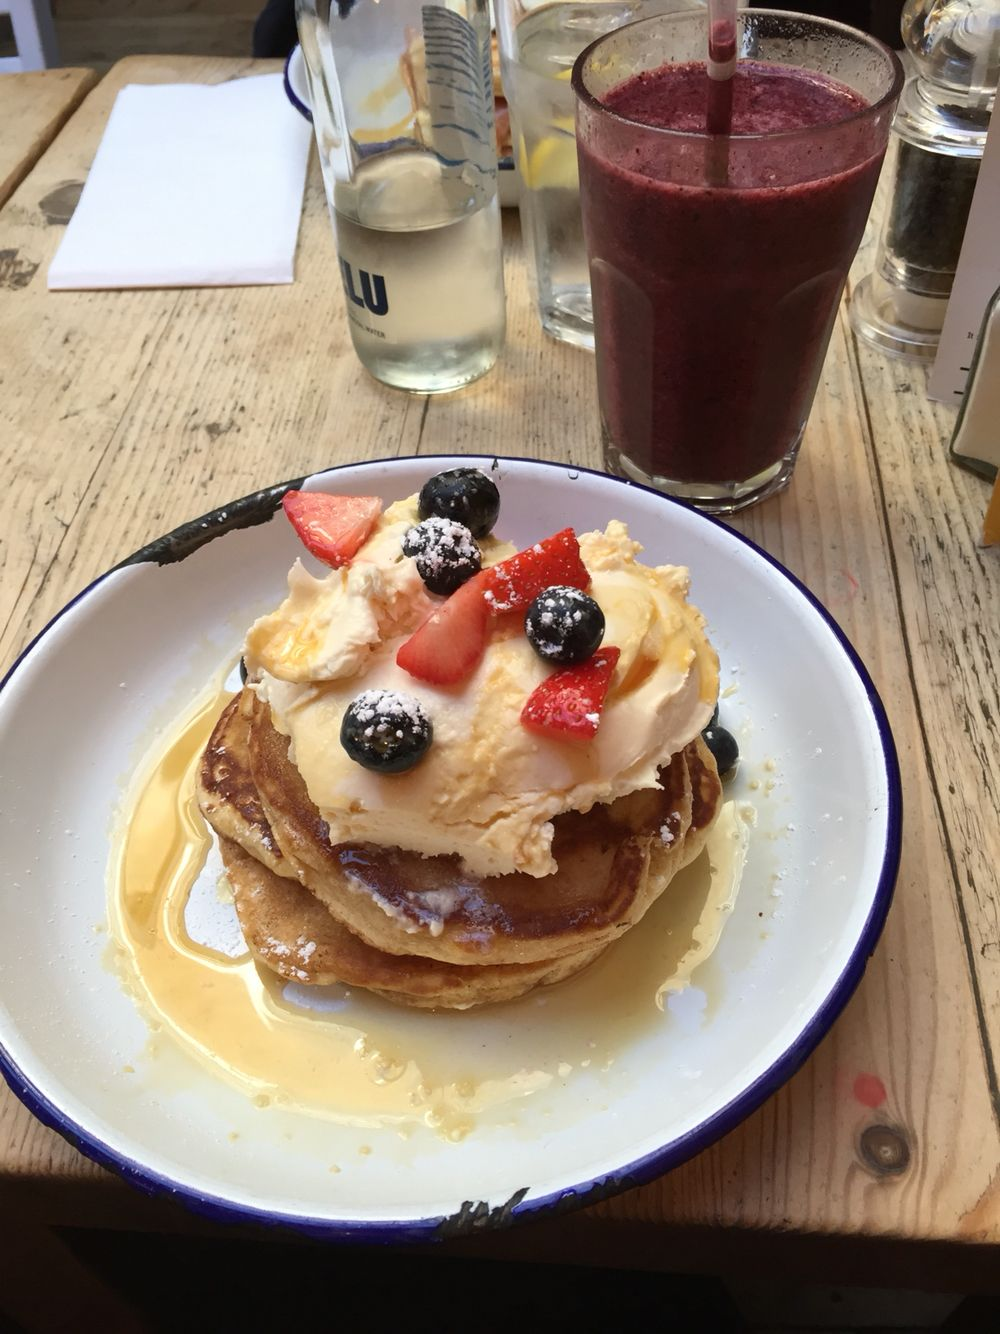 LONDON - Food • The breakfast club #London #Food #Breakfast #Pancakes #Juice #TheBreakfastClub #Angel